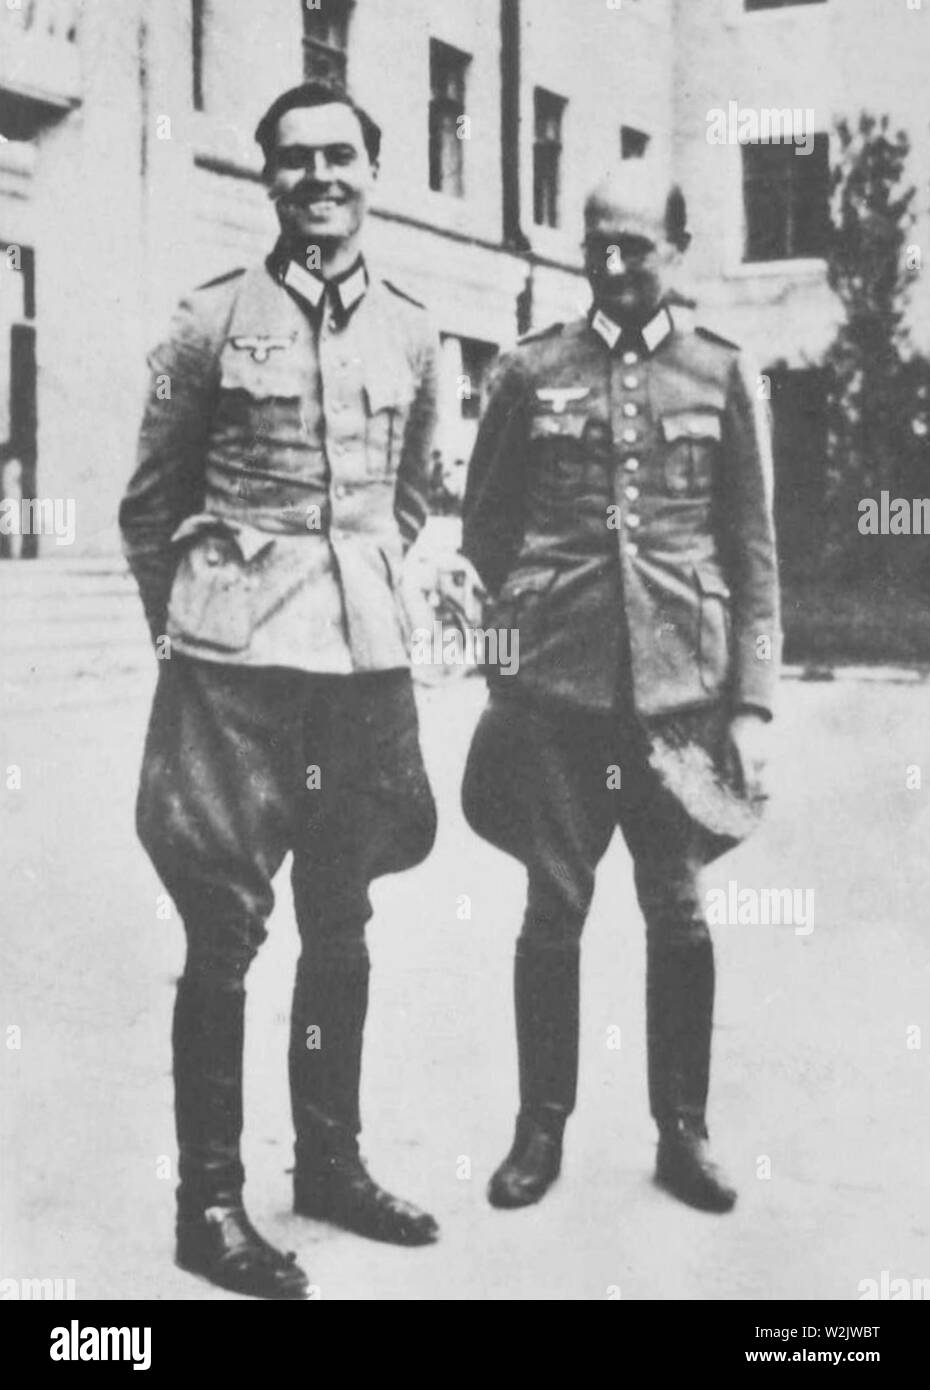 Claus von Stauffenberg and Albrecht Mertz von Quirnheim in 1944, Claus Philipp Maria Schenk Graf von Stauffenberg (1907 – 1944) German army officer. Stauffenberg was one of the leading members of the failed 20 July plot of 1944 to assassinate Adolf Hitler, he was executed by firing squad shortly after the failed attempt known as Operation Valkyrie - Stock Image